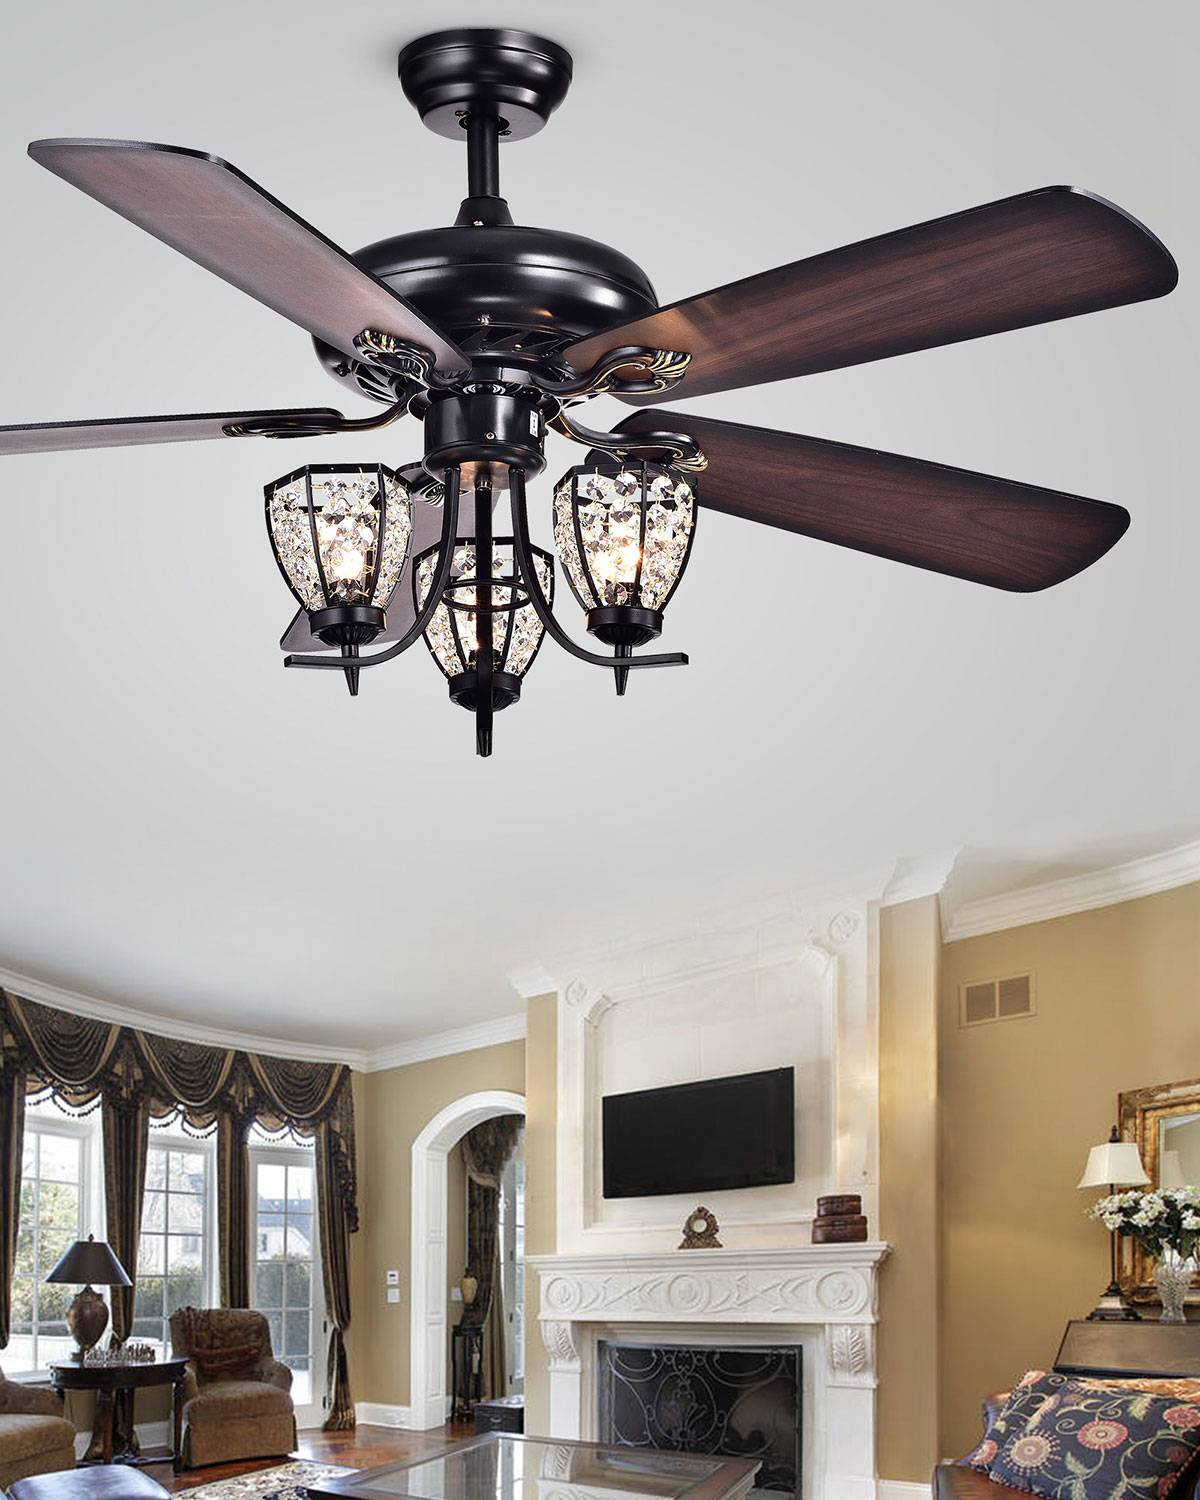 Home Accessories Mirabelle Lamp Post Chandelier Ceiling Fan